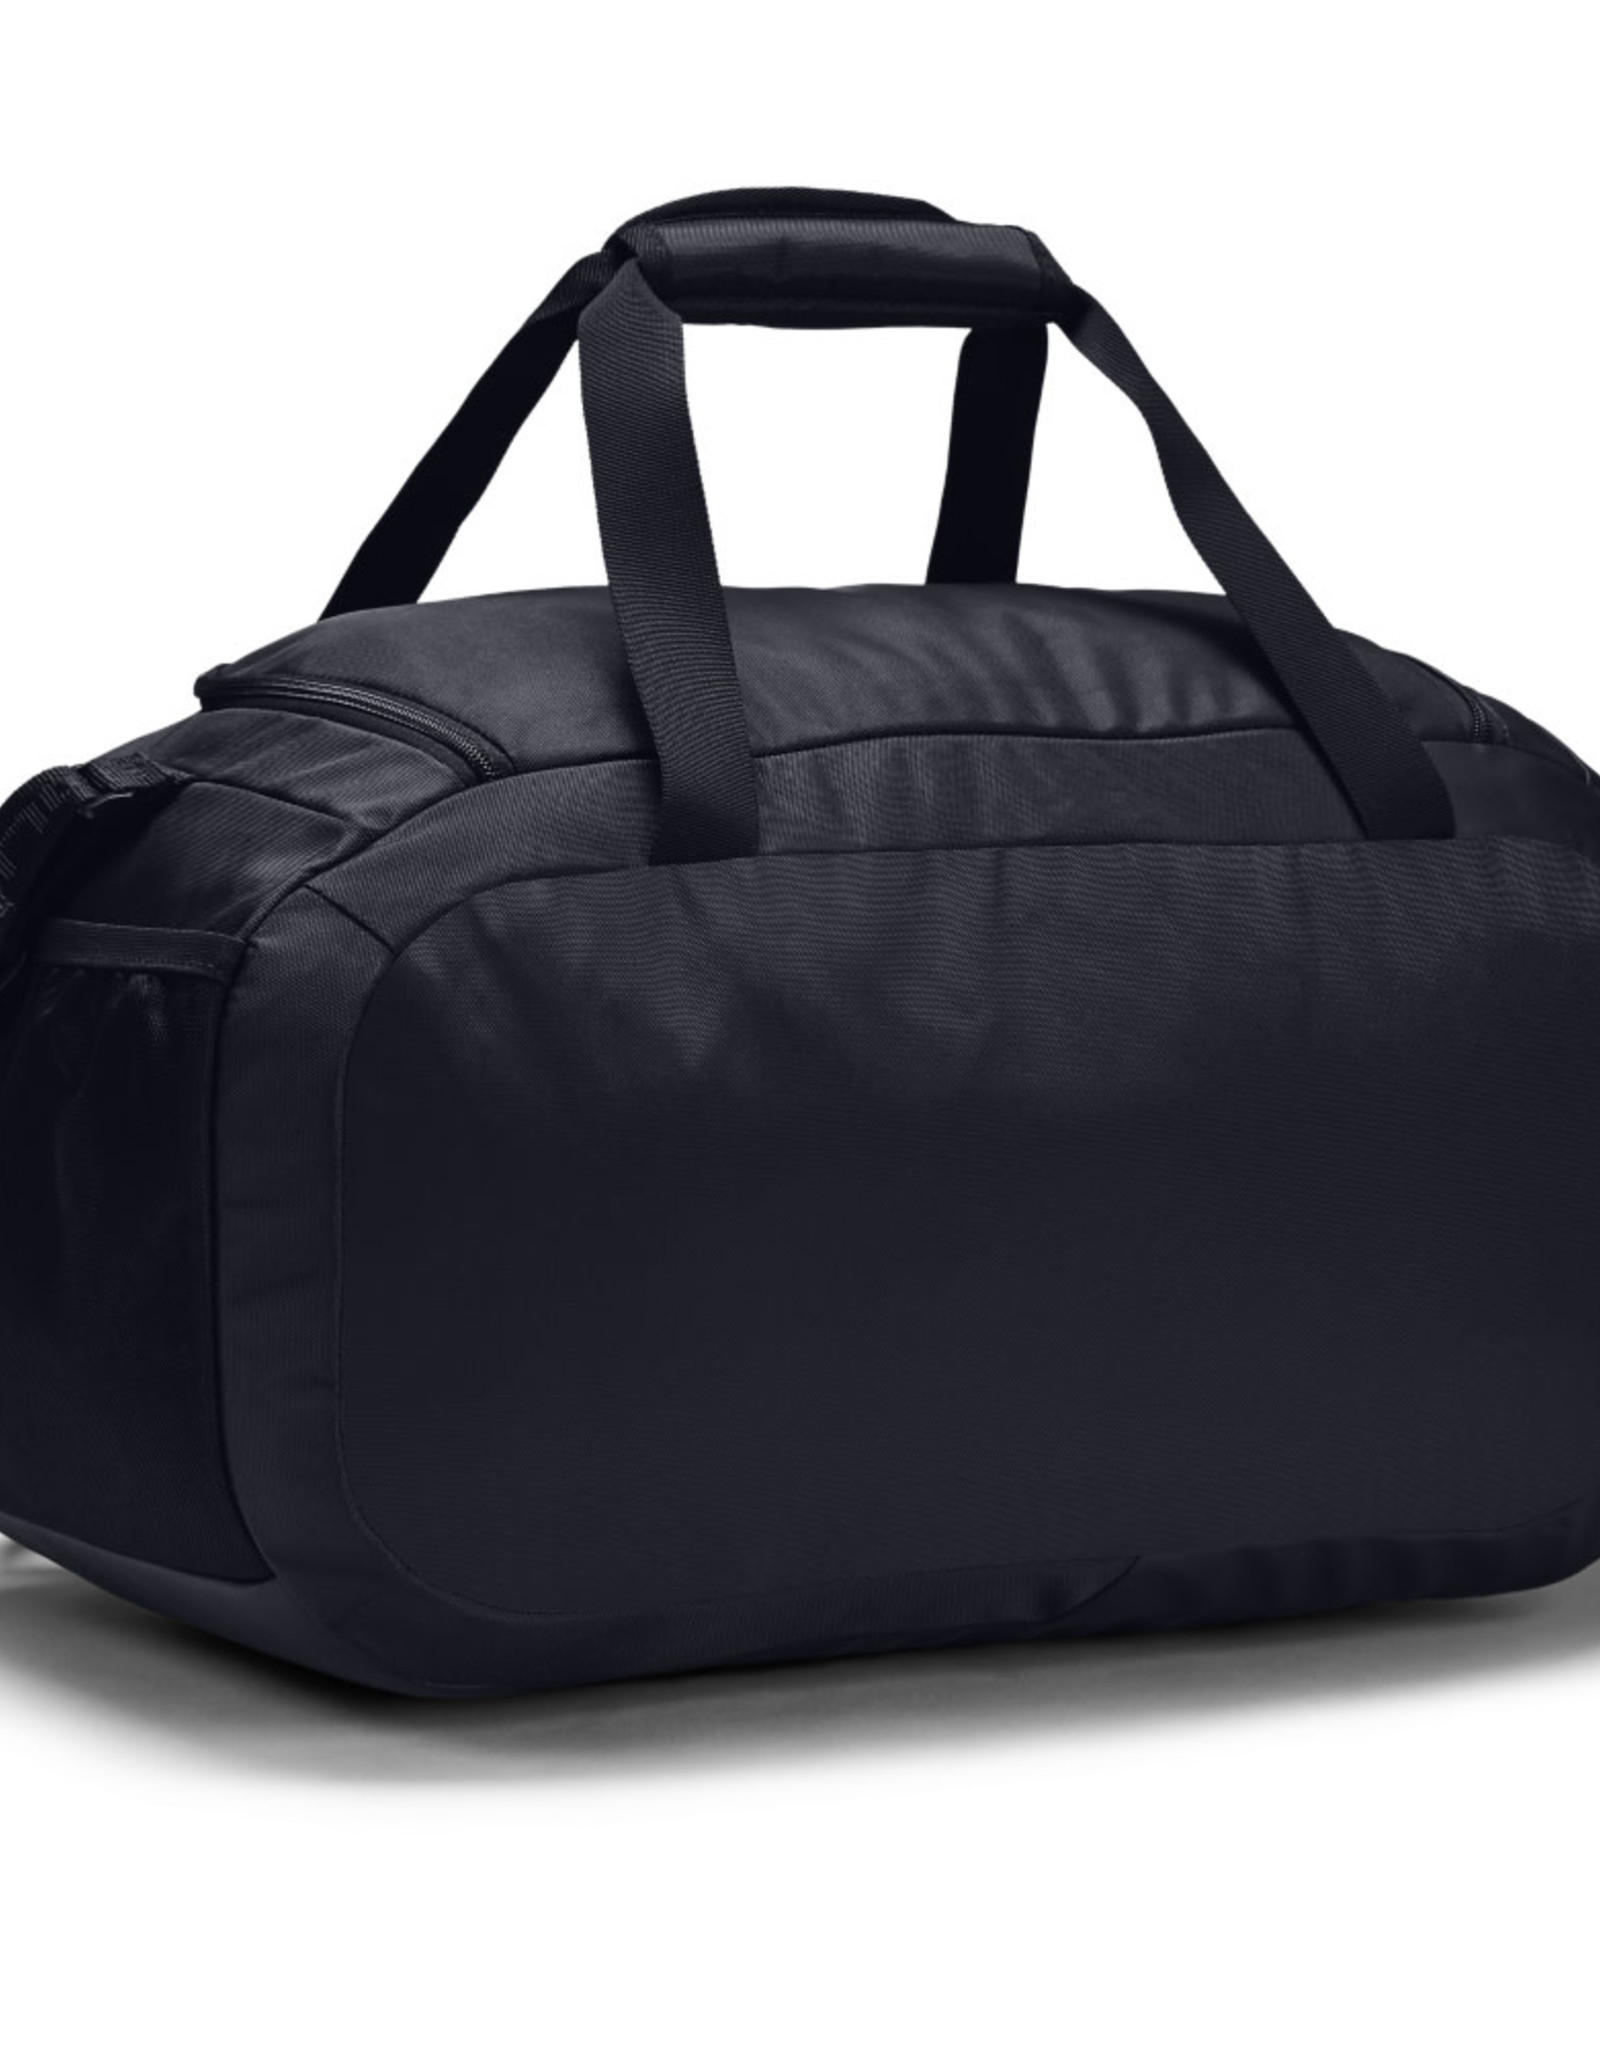 Under Armour UA Undeniable 4.0 Duffle SM - Black-BLACK MEDIUM HEATHER-Pitch Gray - OSFA